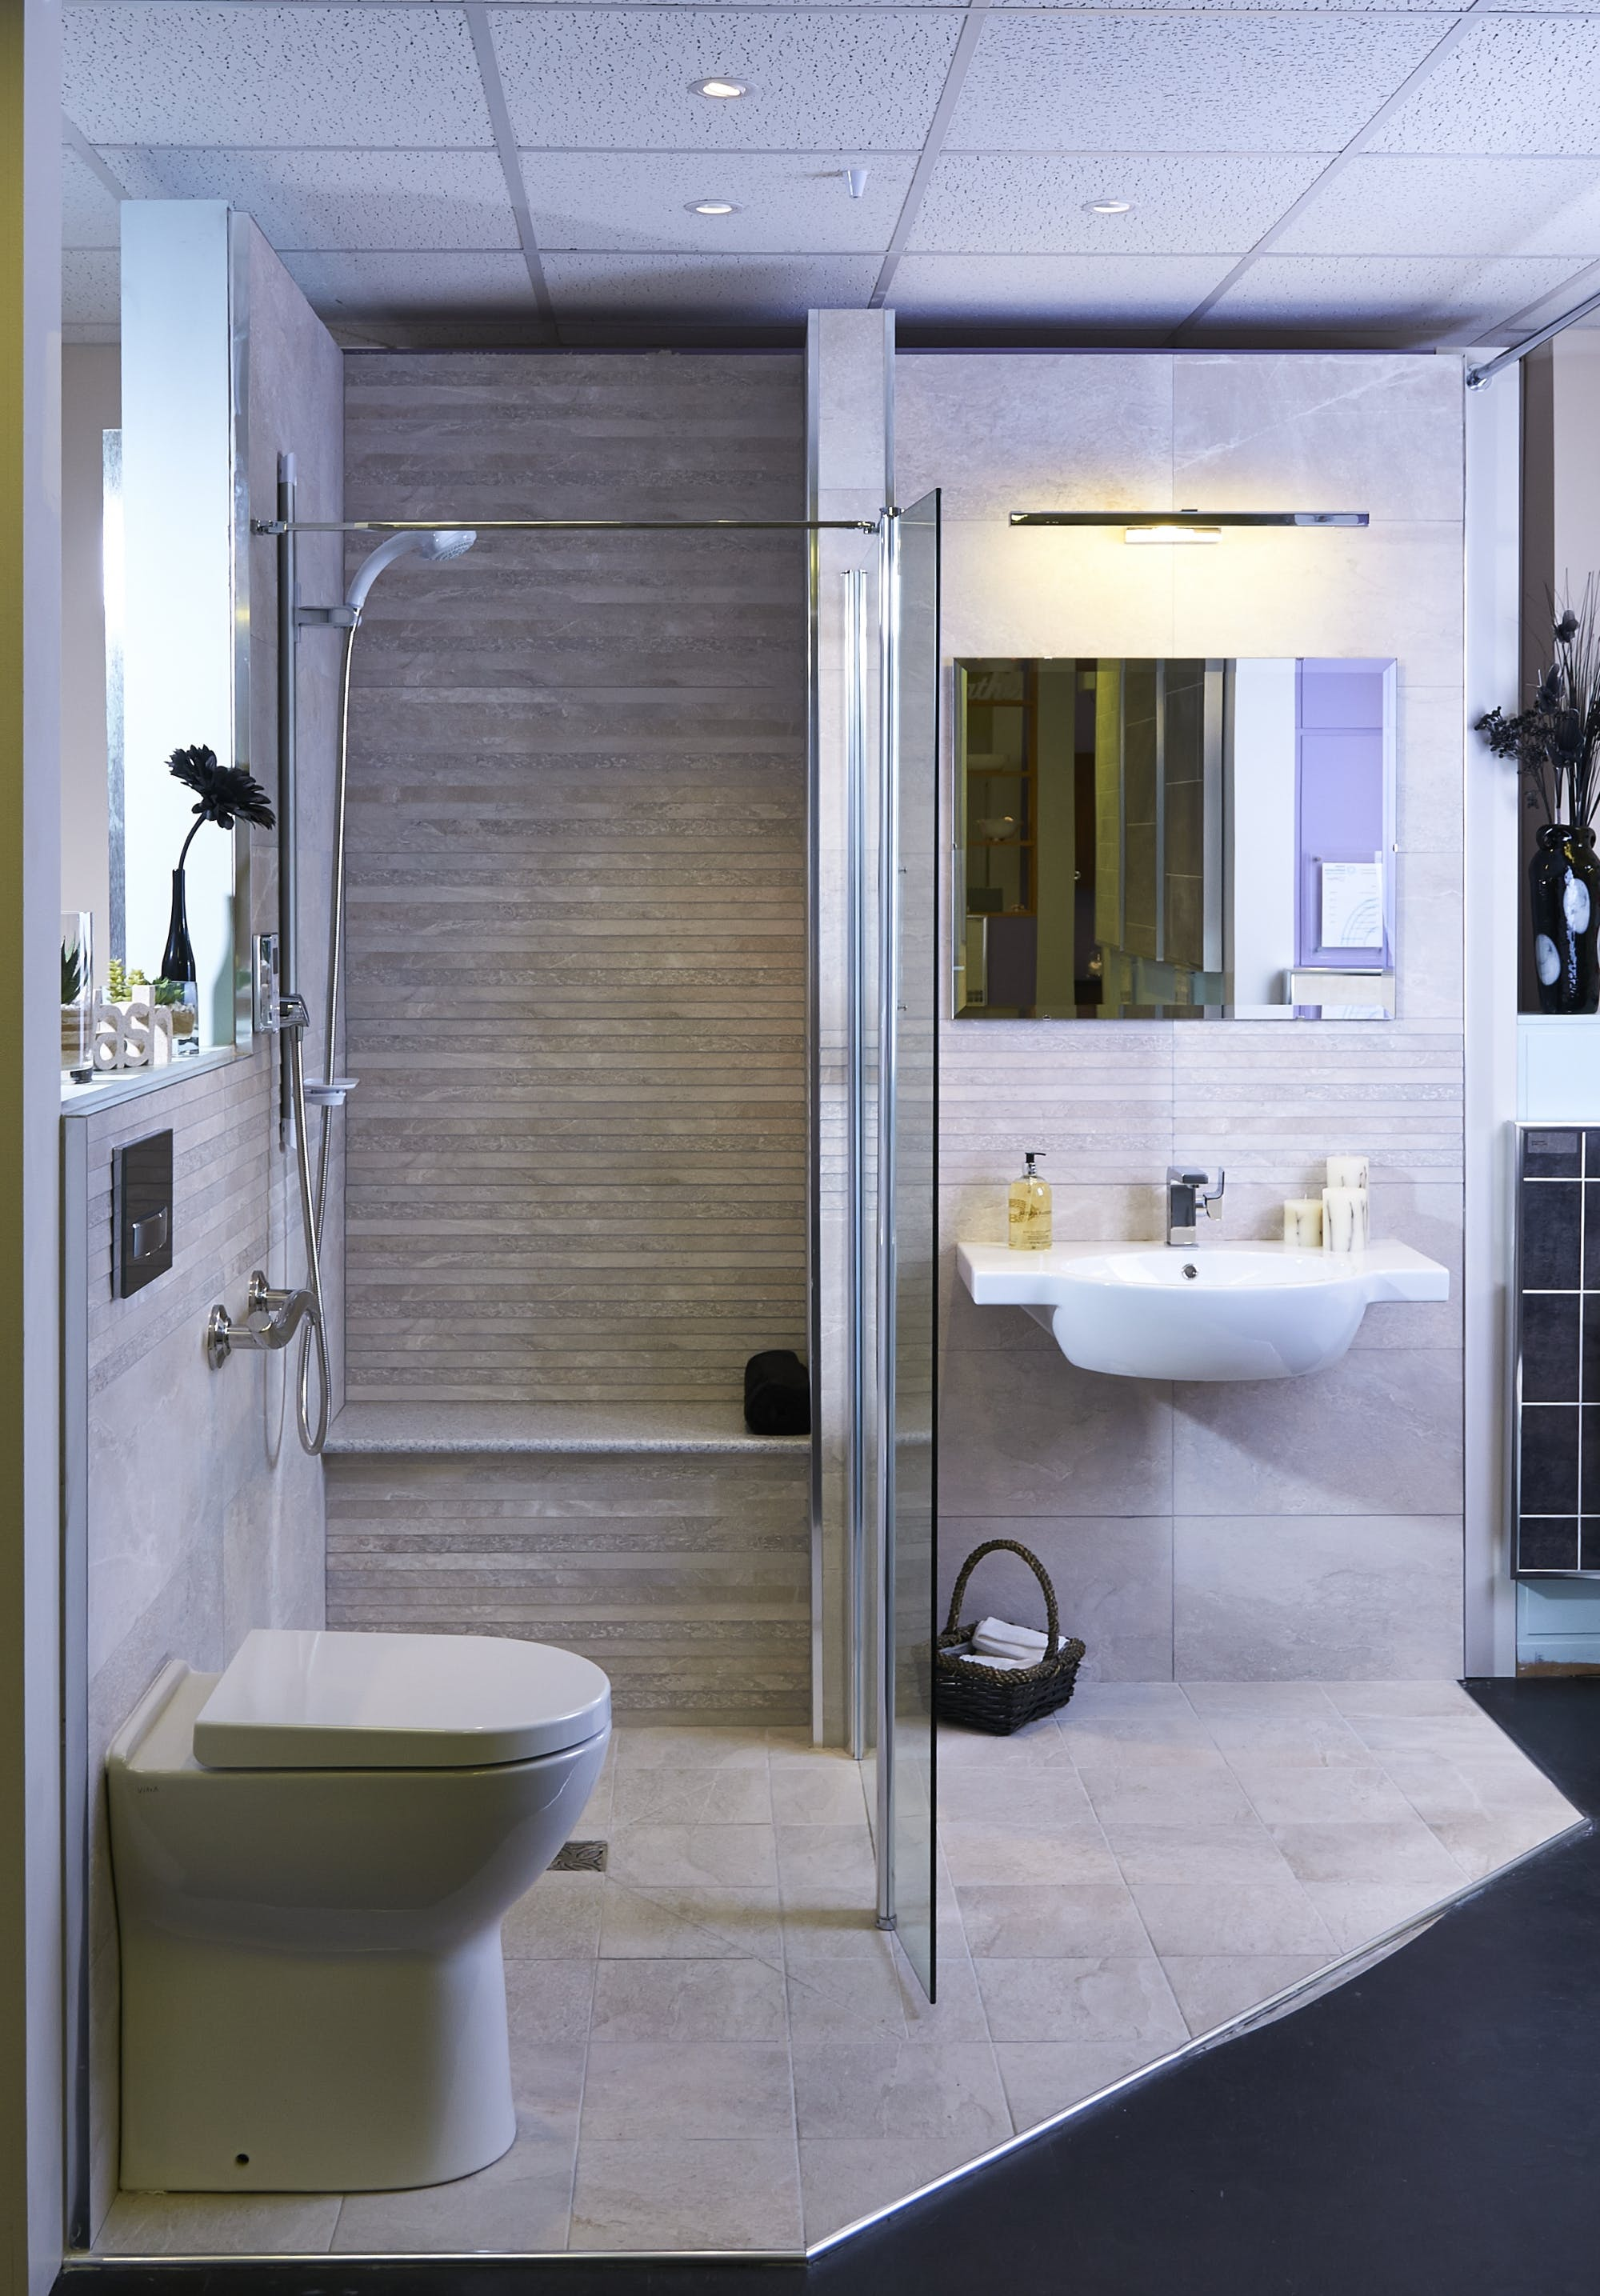 Toilet Room Designs: Stylish, Easy Access Bath & Shower Rooms On Display At Our